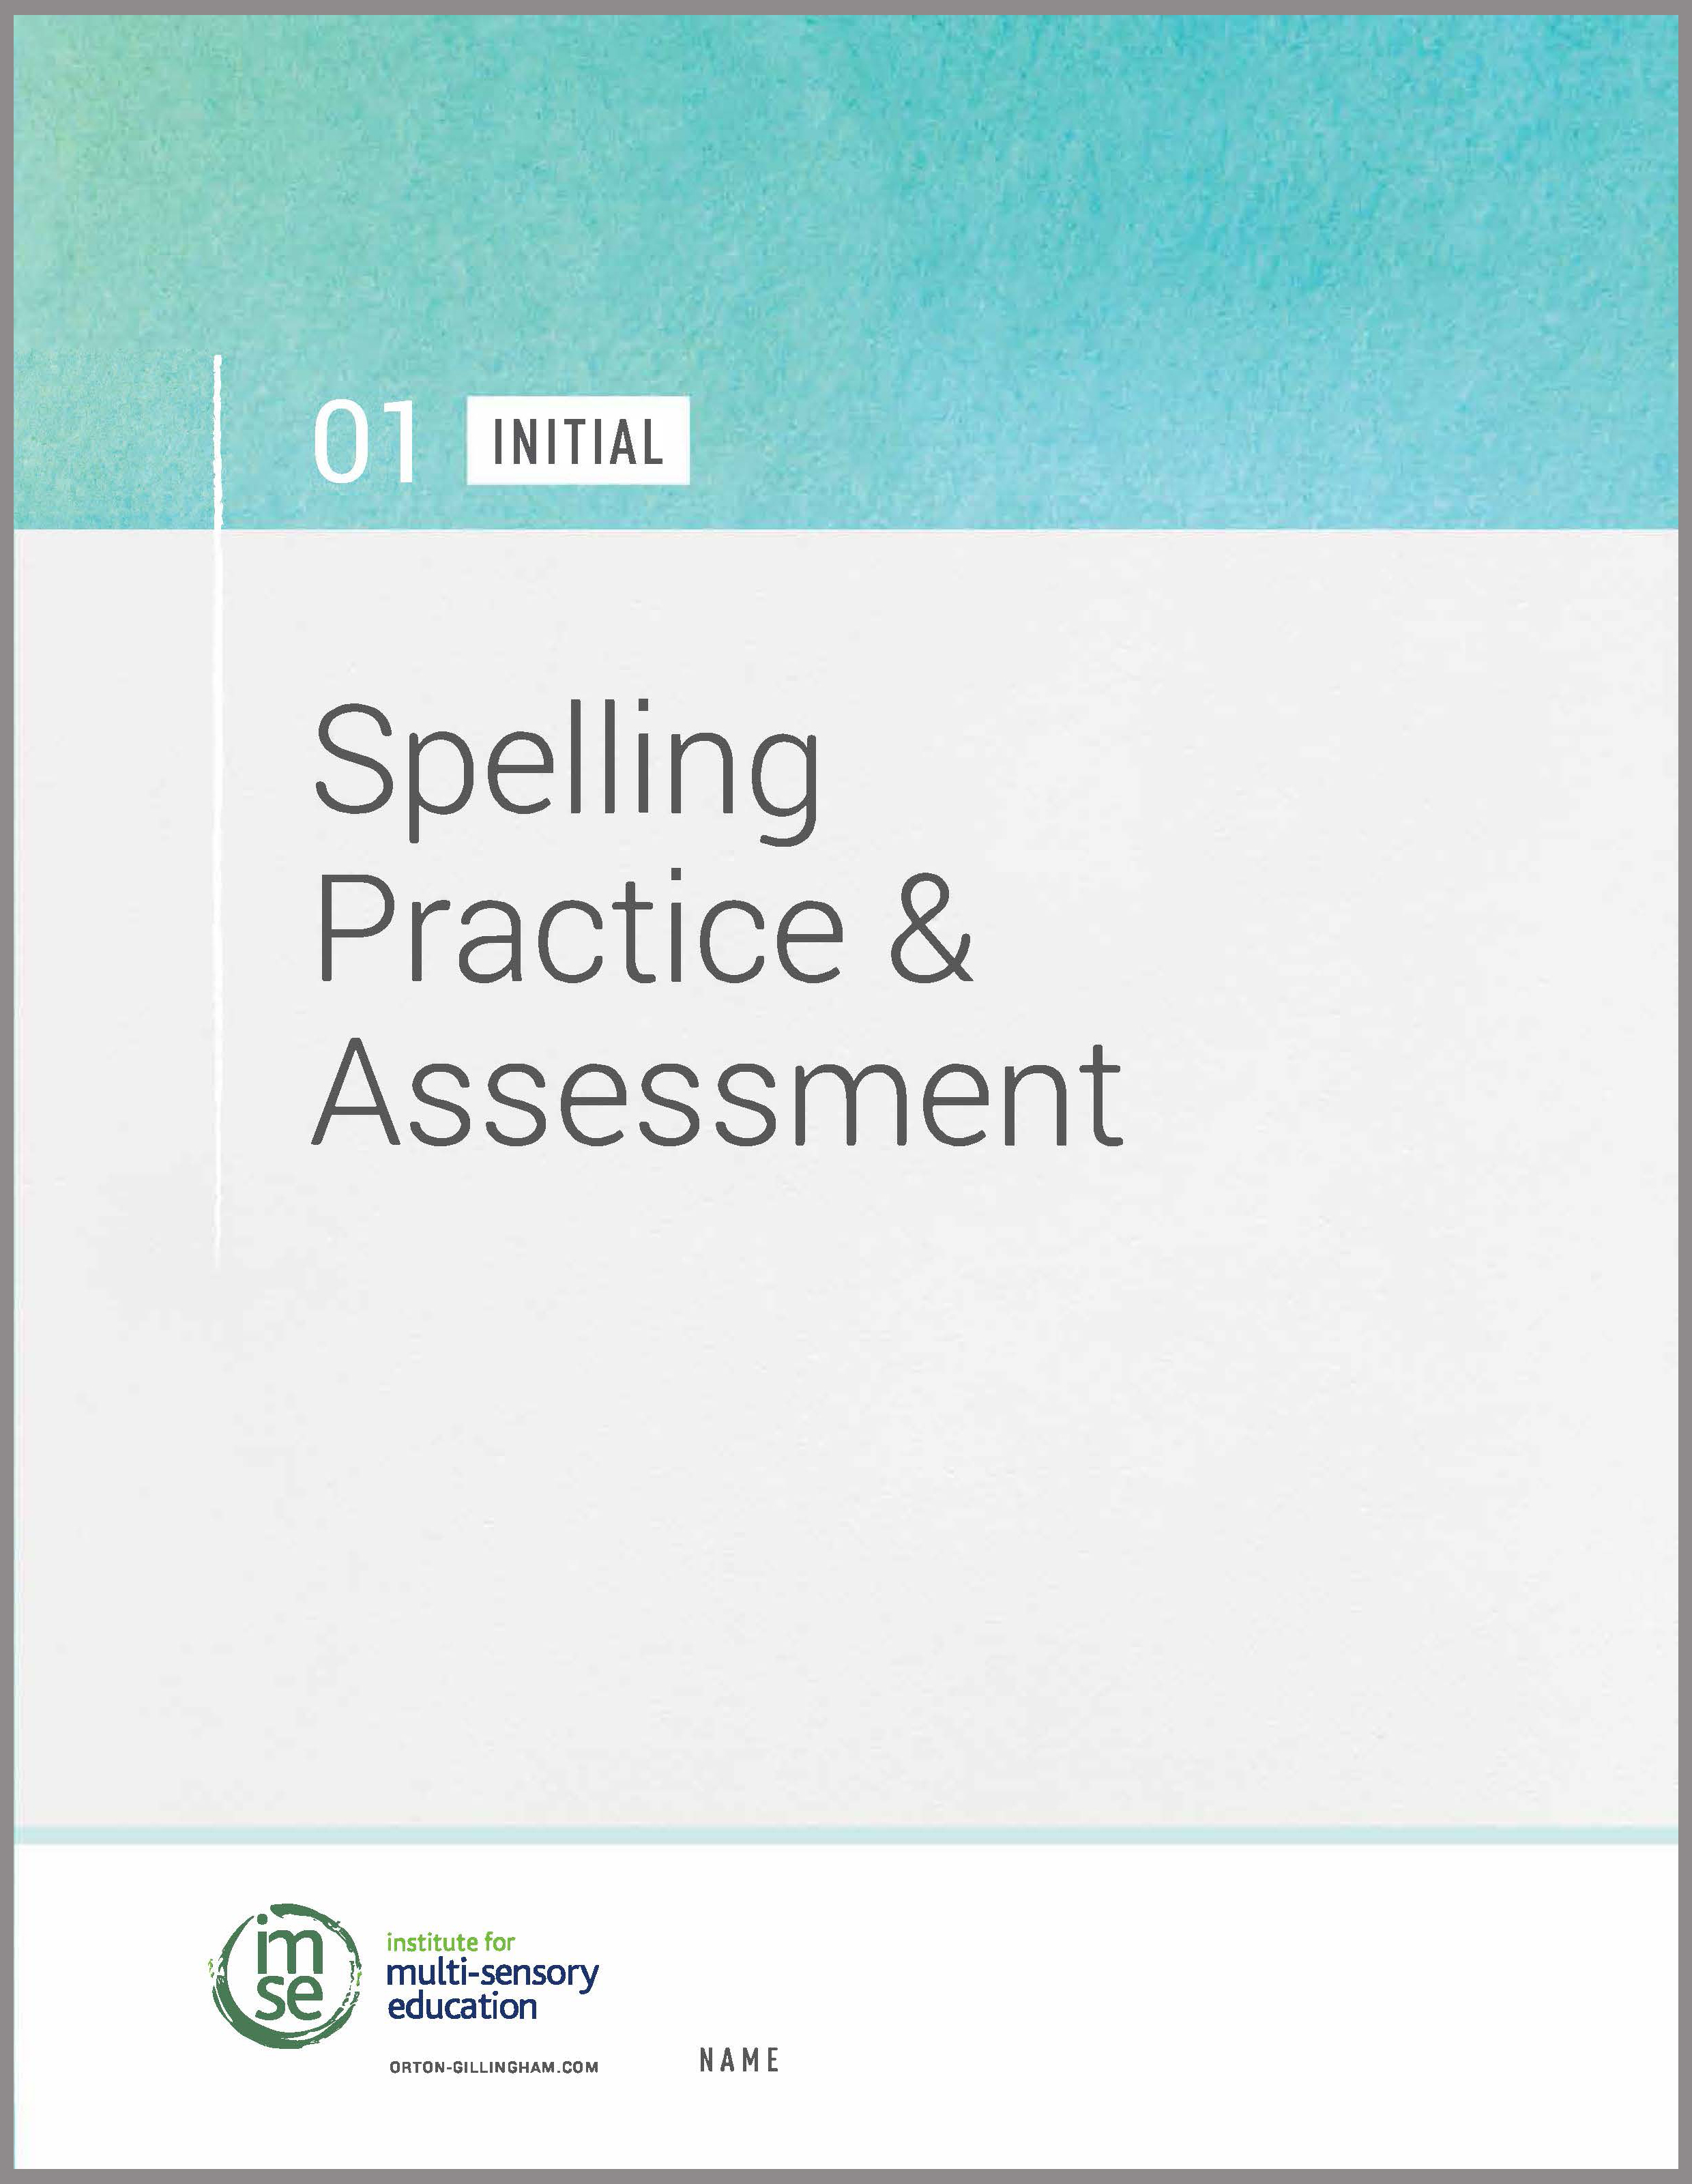 Level 01 Spelling Practice and Assessment - Initial